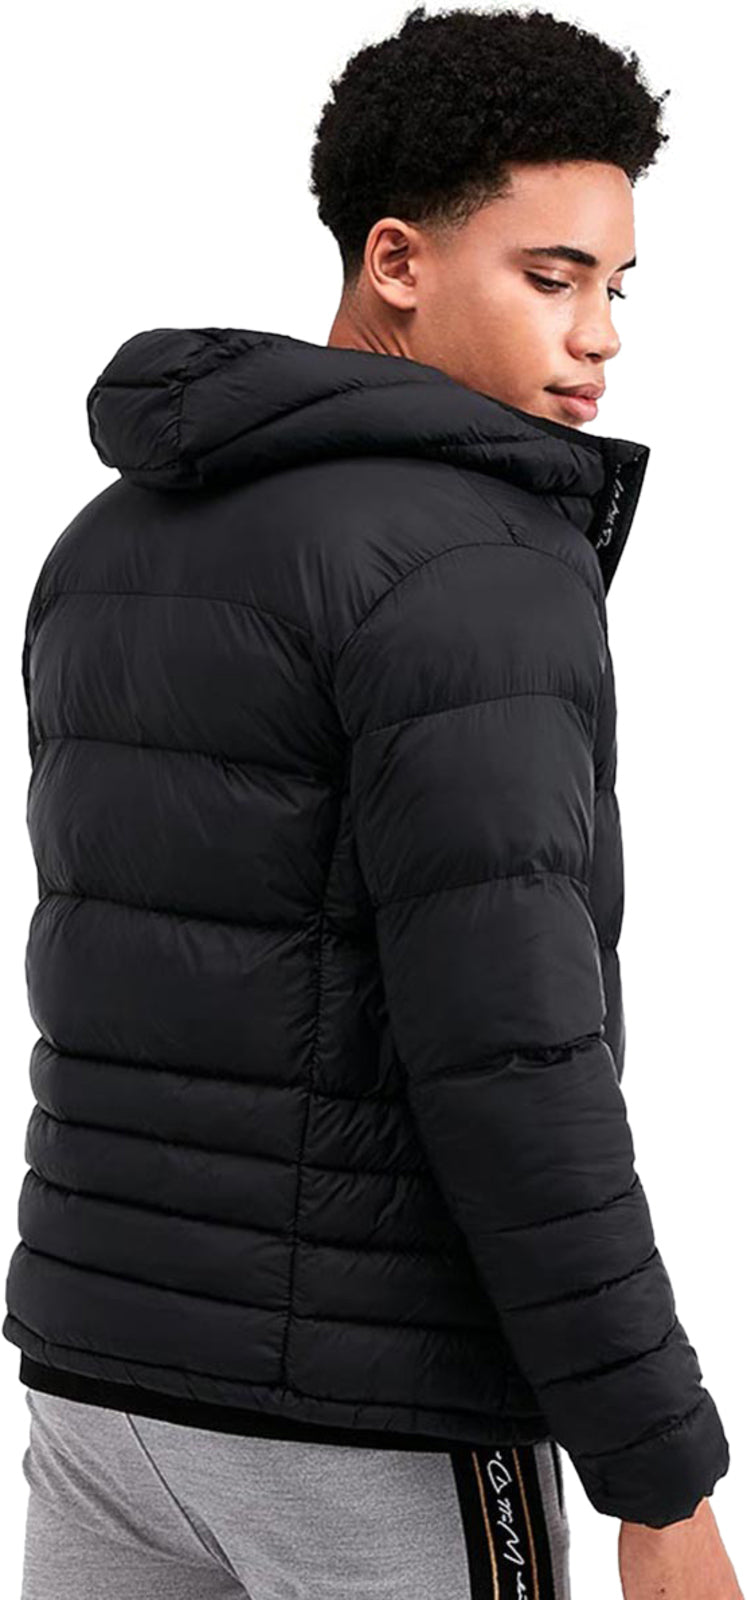 Kings-Will-Dream-Bowden-Puffer-Jacket-Black